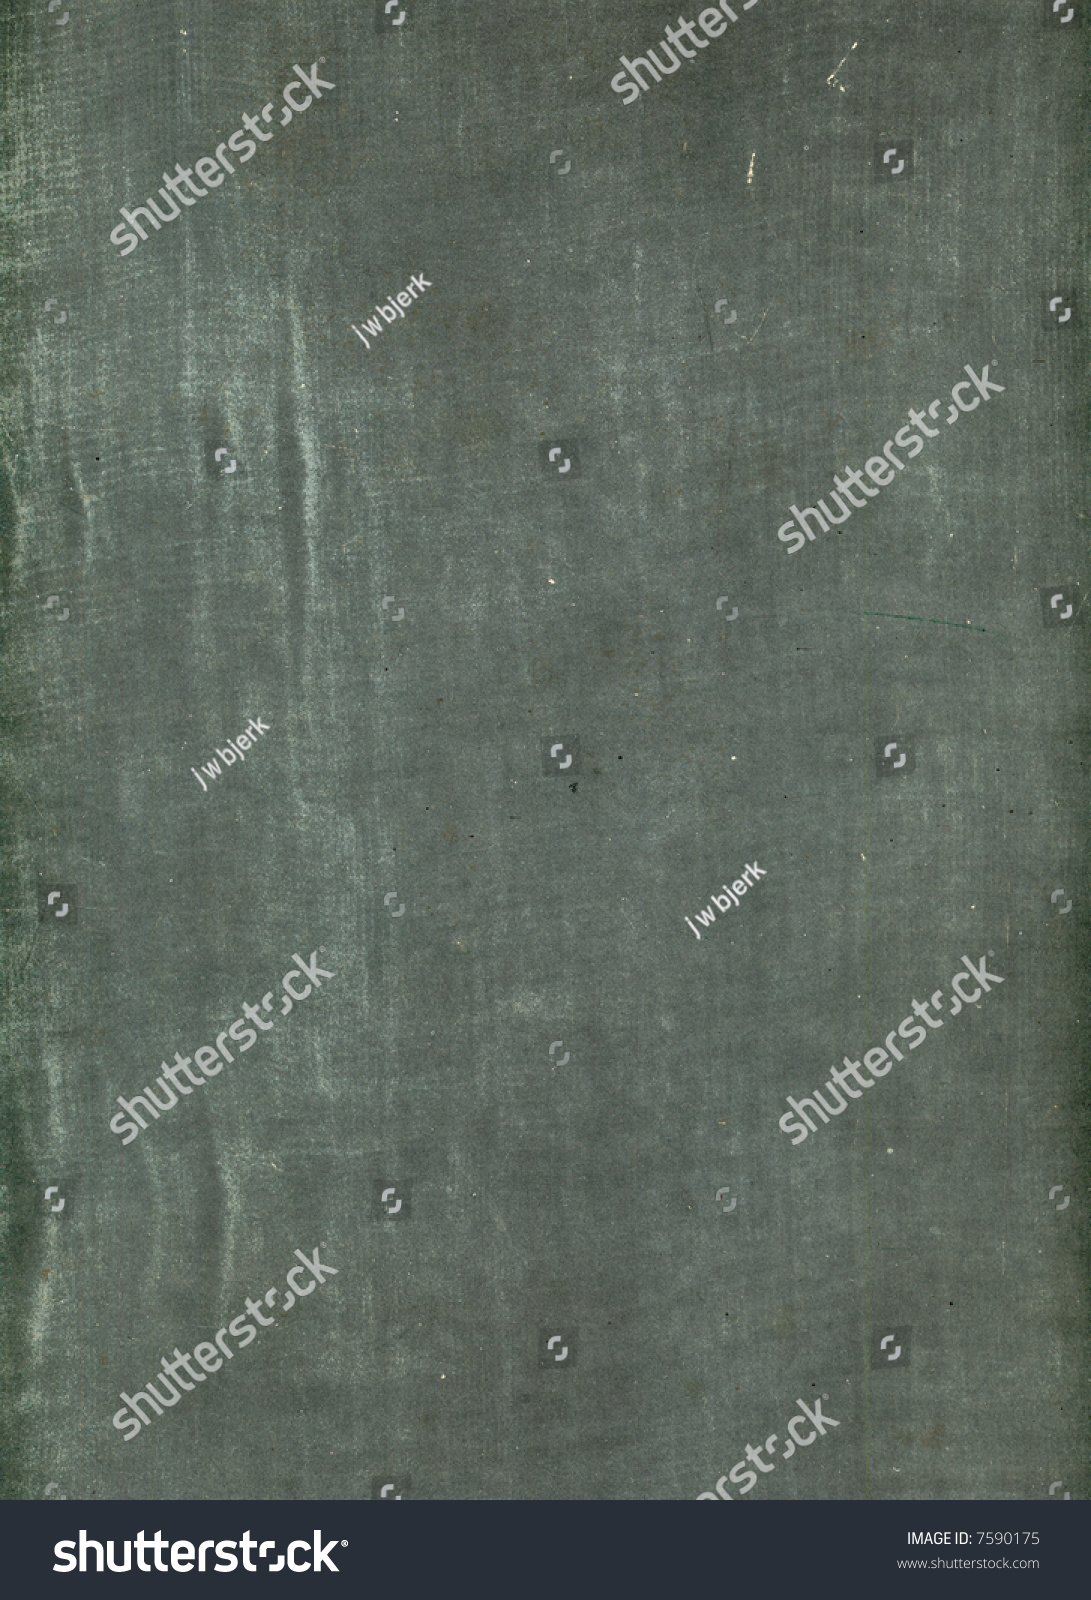 Fabric Book Cover Texture : An old distressed cloth book cover suitable for use as a